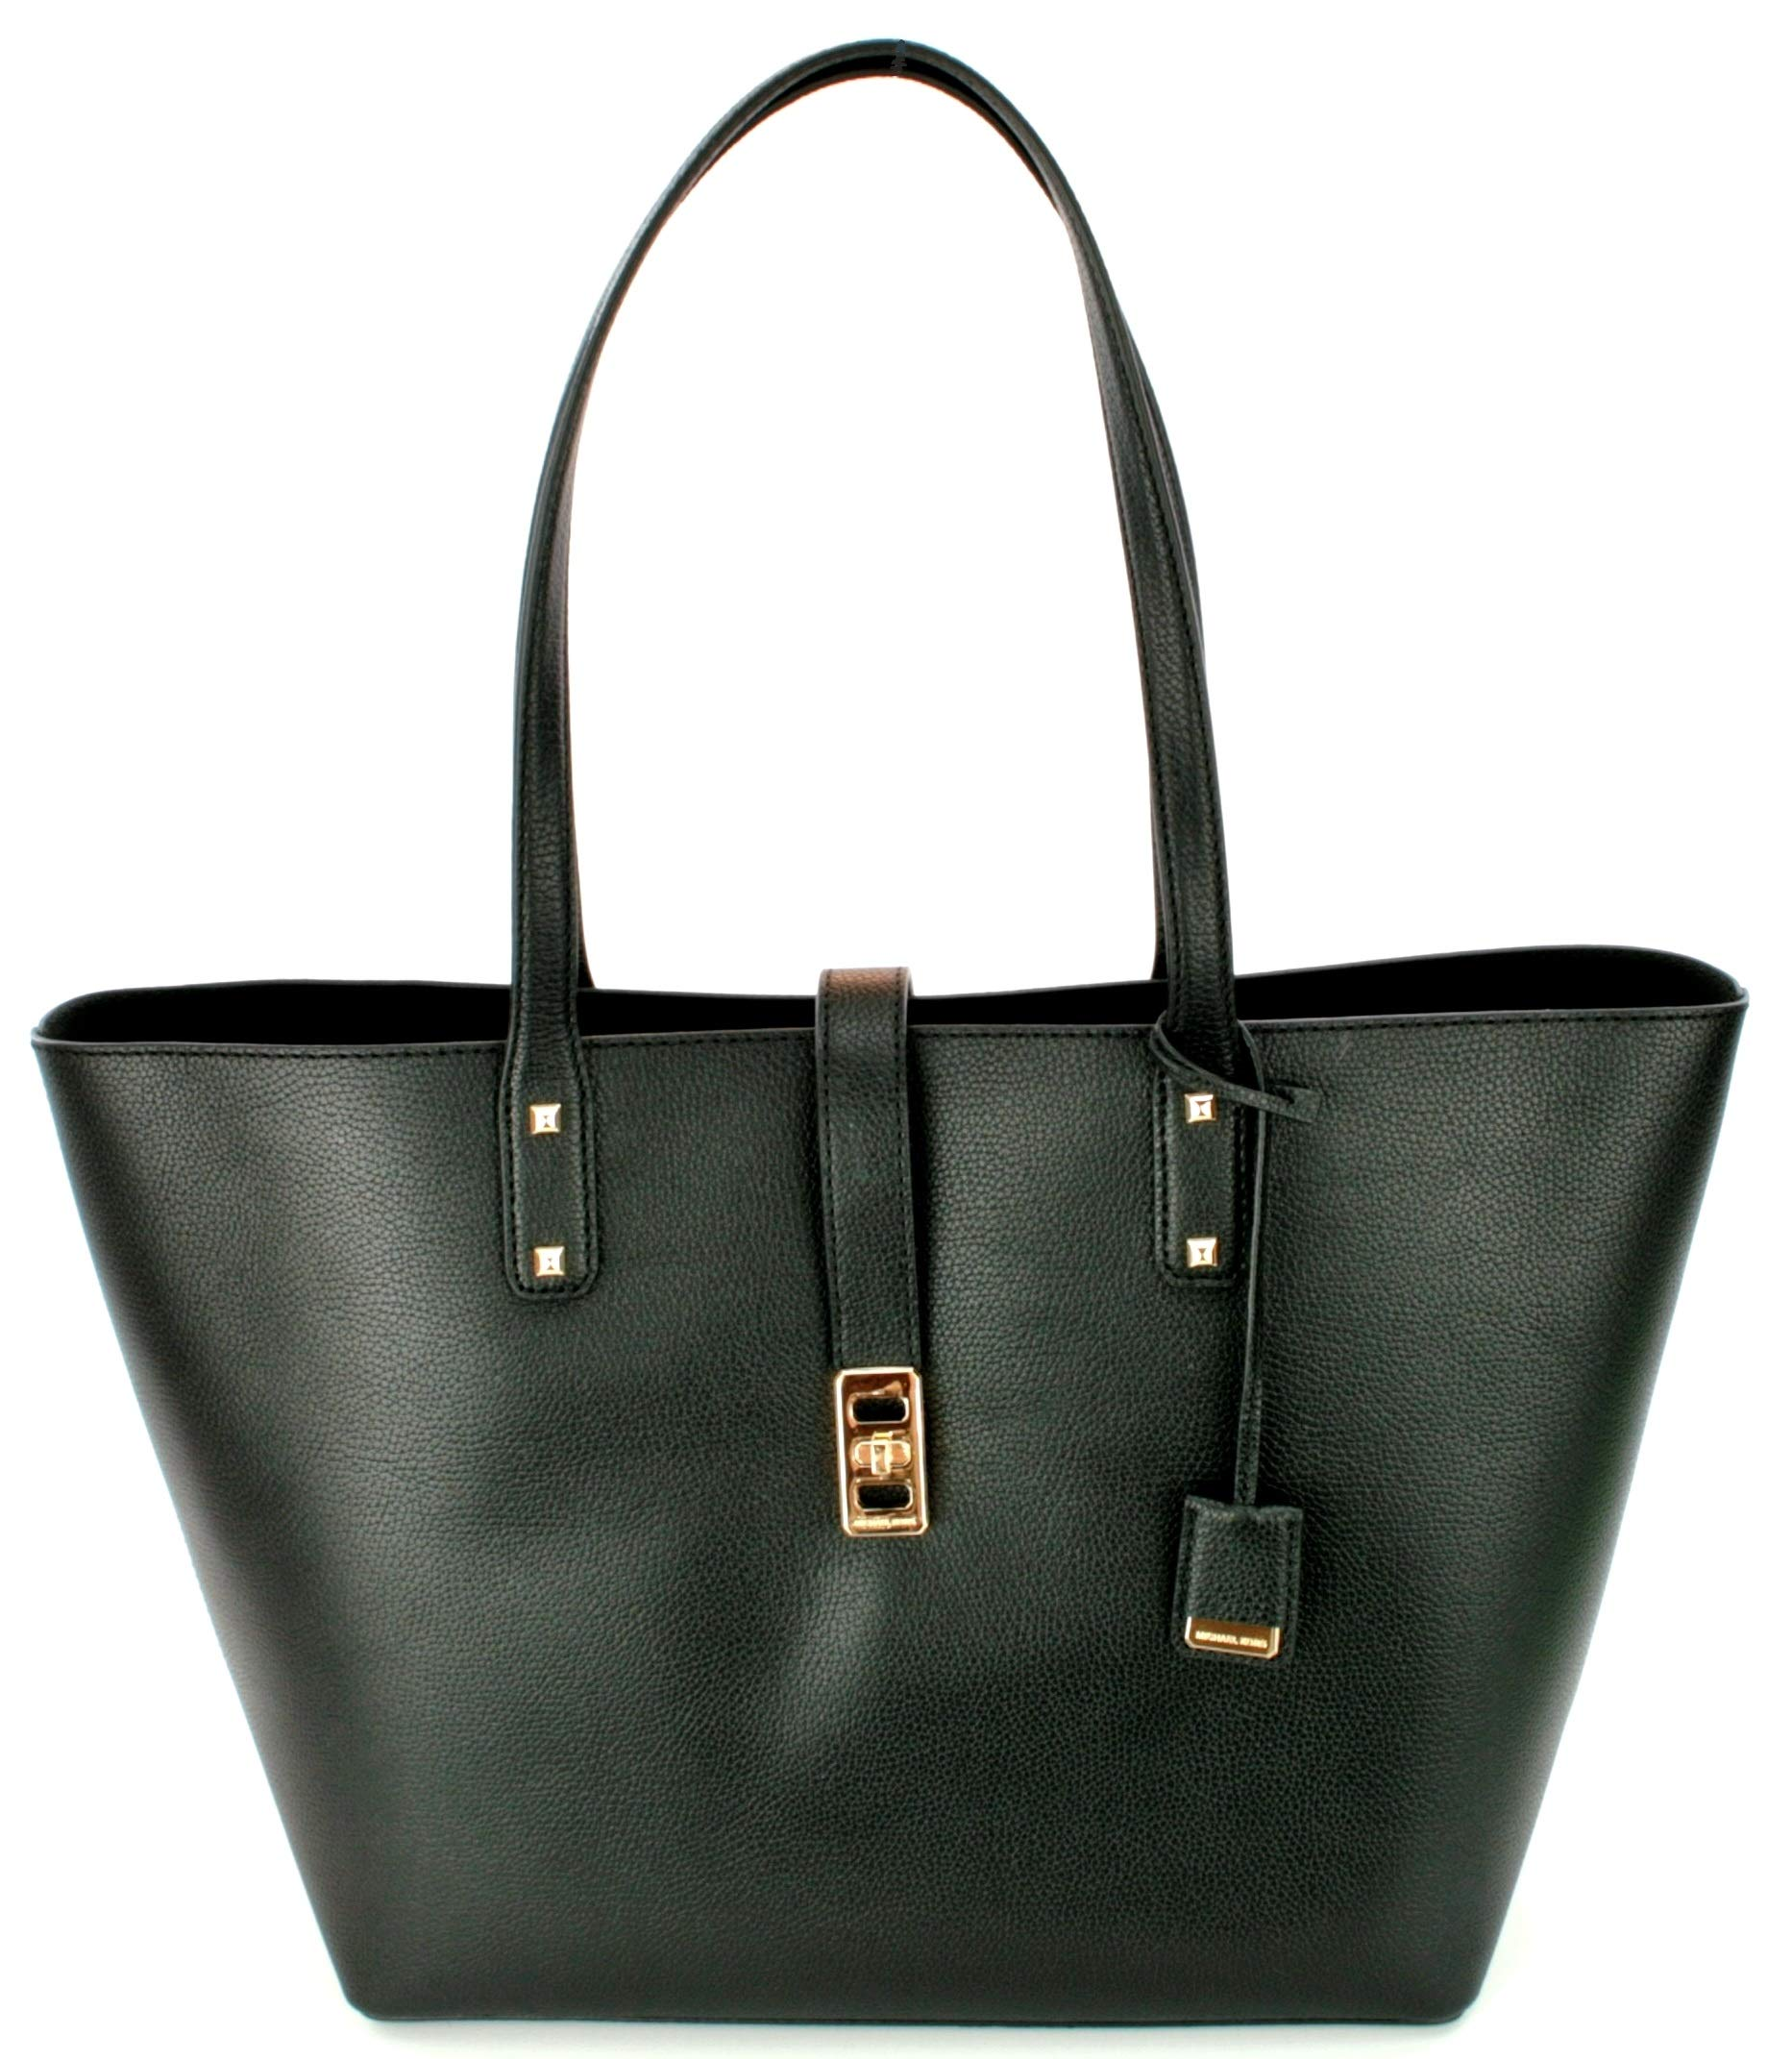 Michael-Kors-Karson-Large-Carryall-Leather-Tote-Bag